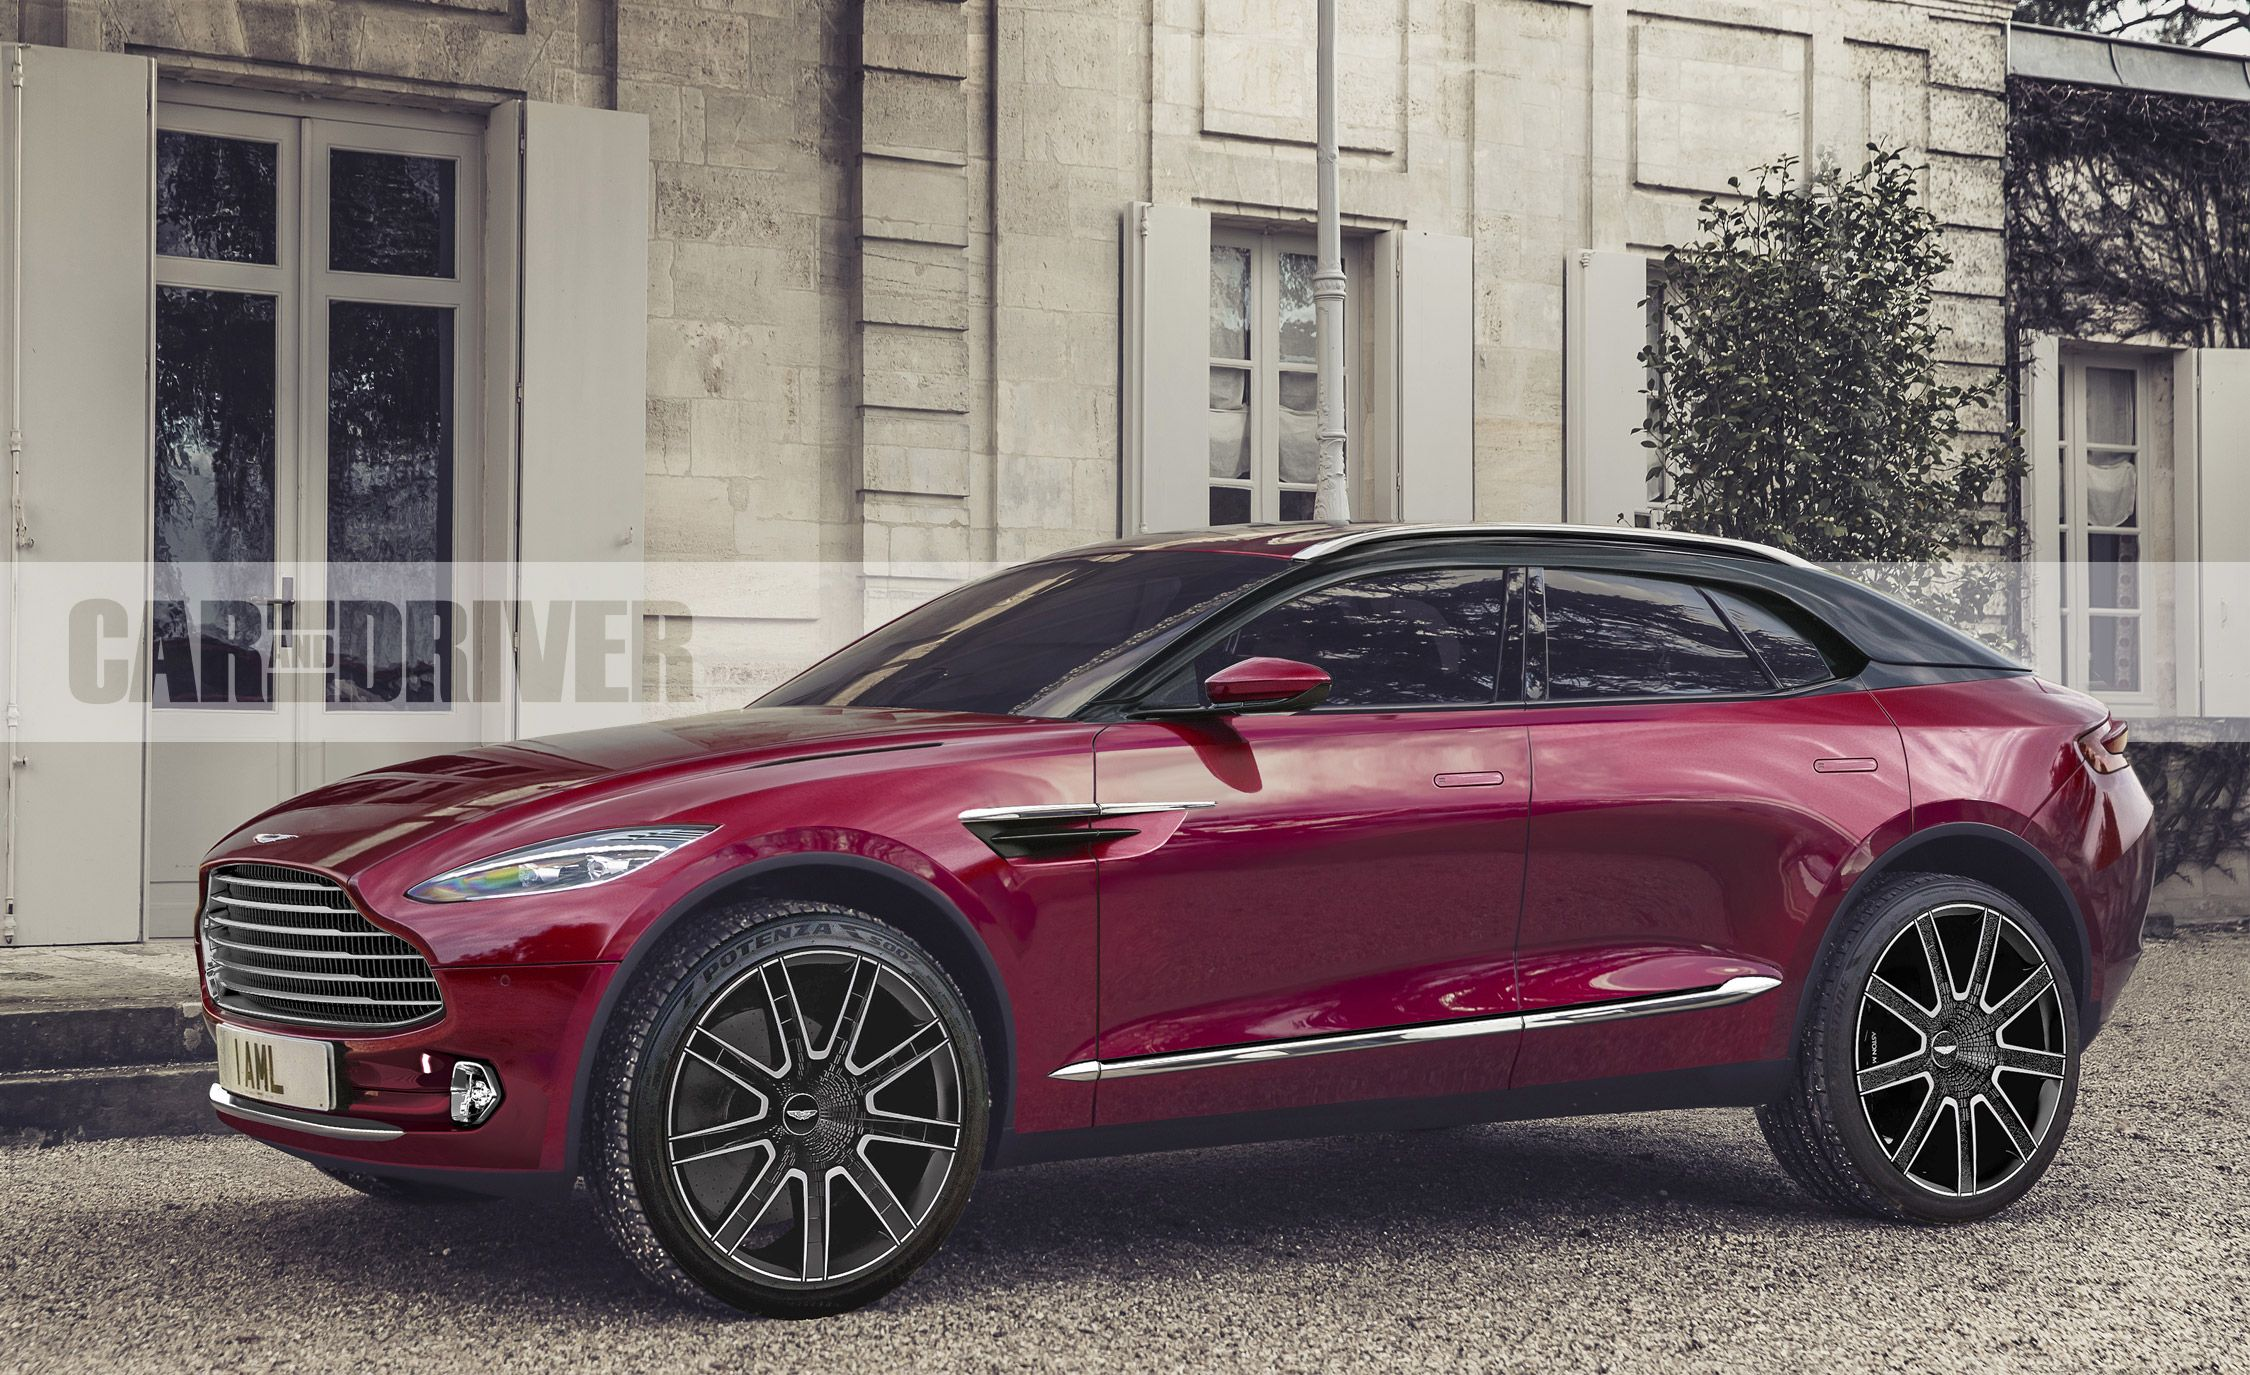 the 2020 aston martin dbx is a car worth waiting for | feature | car